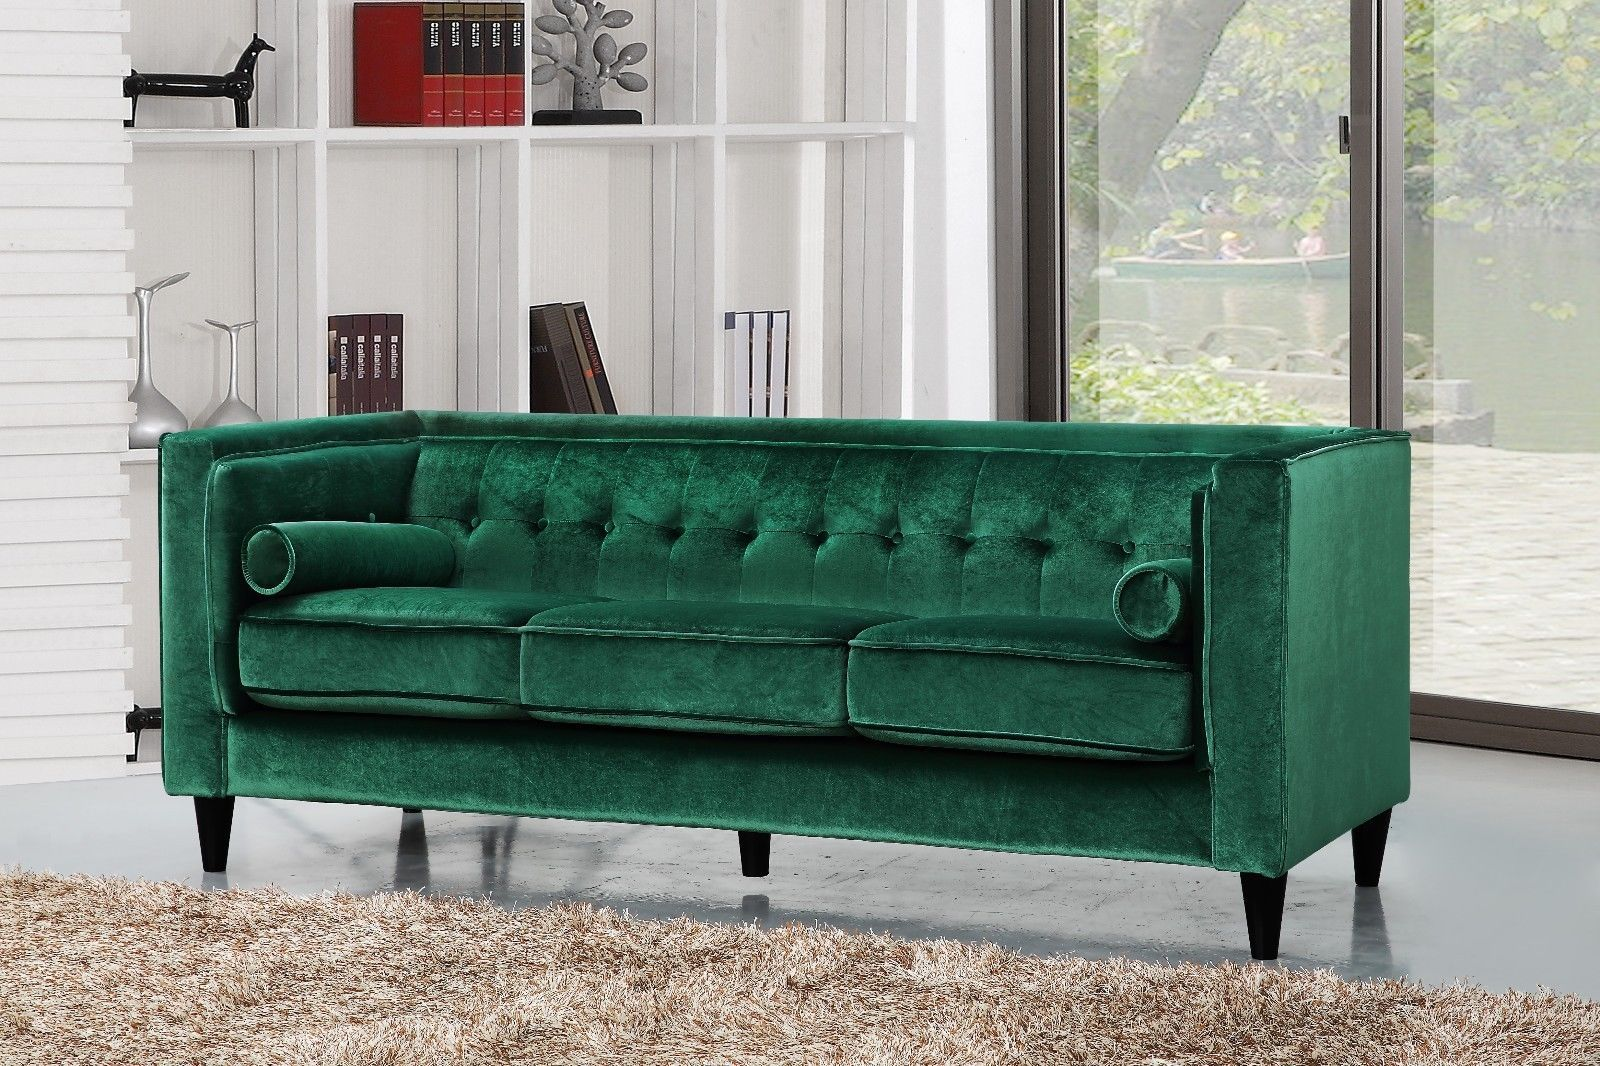 Meridian 642 Taylor Living Room Sofa in Green Velvet Contemporary Style